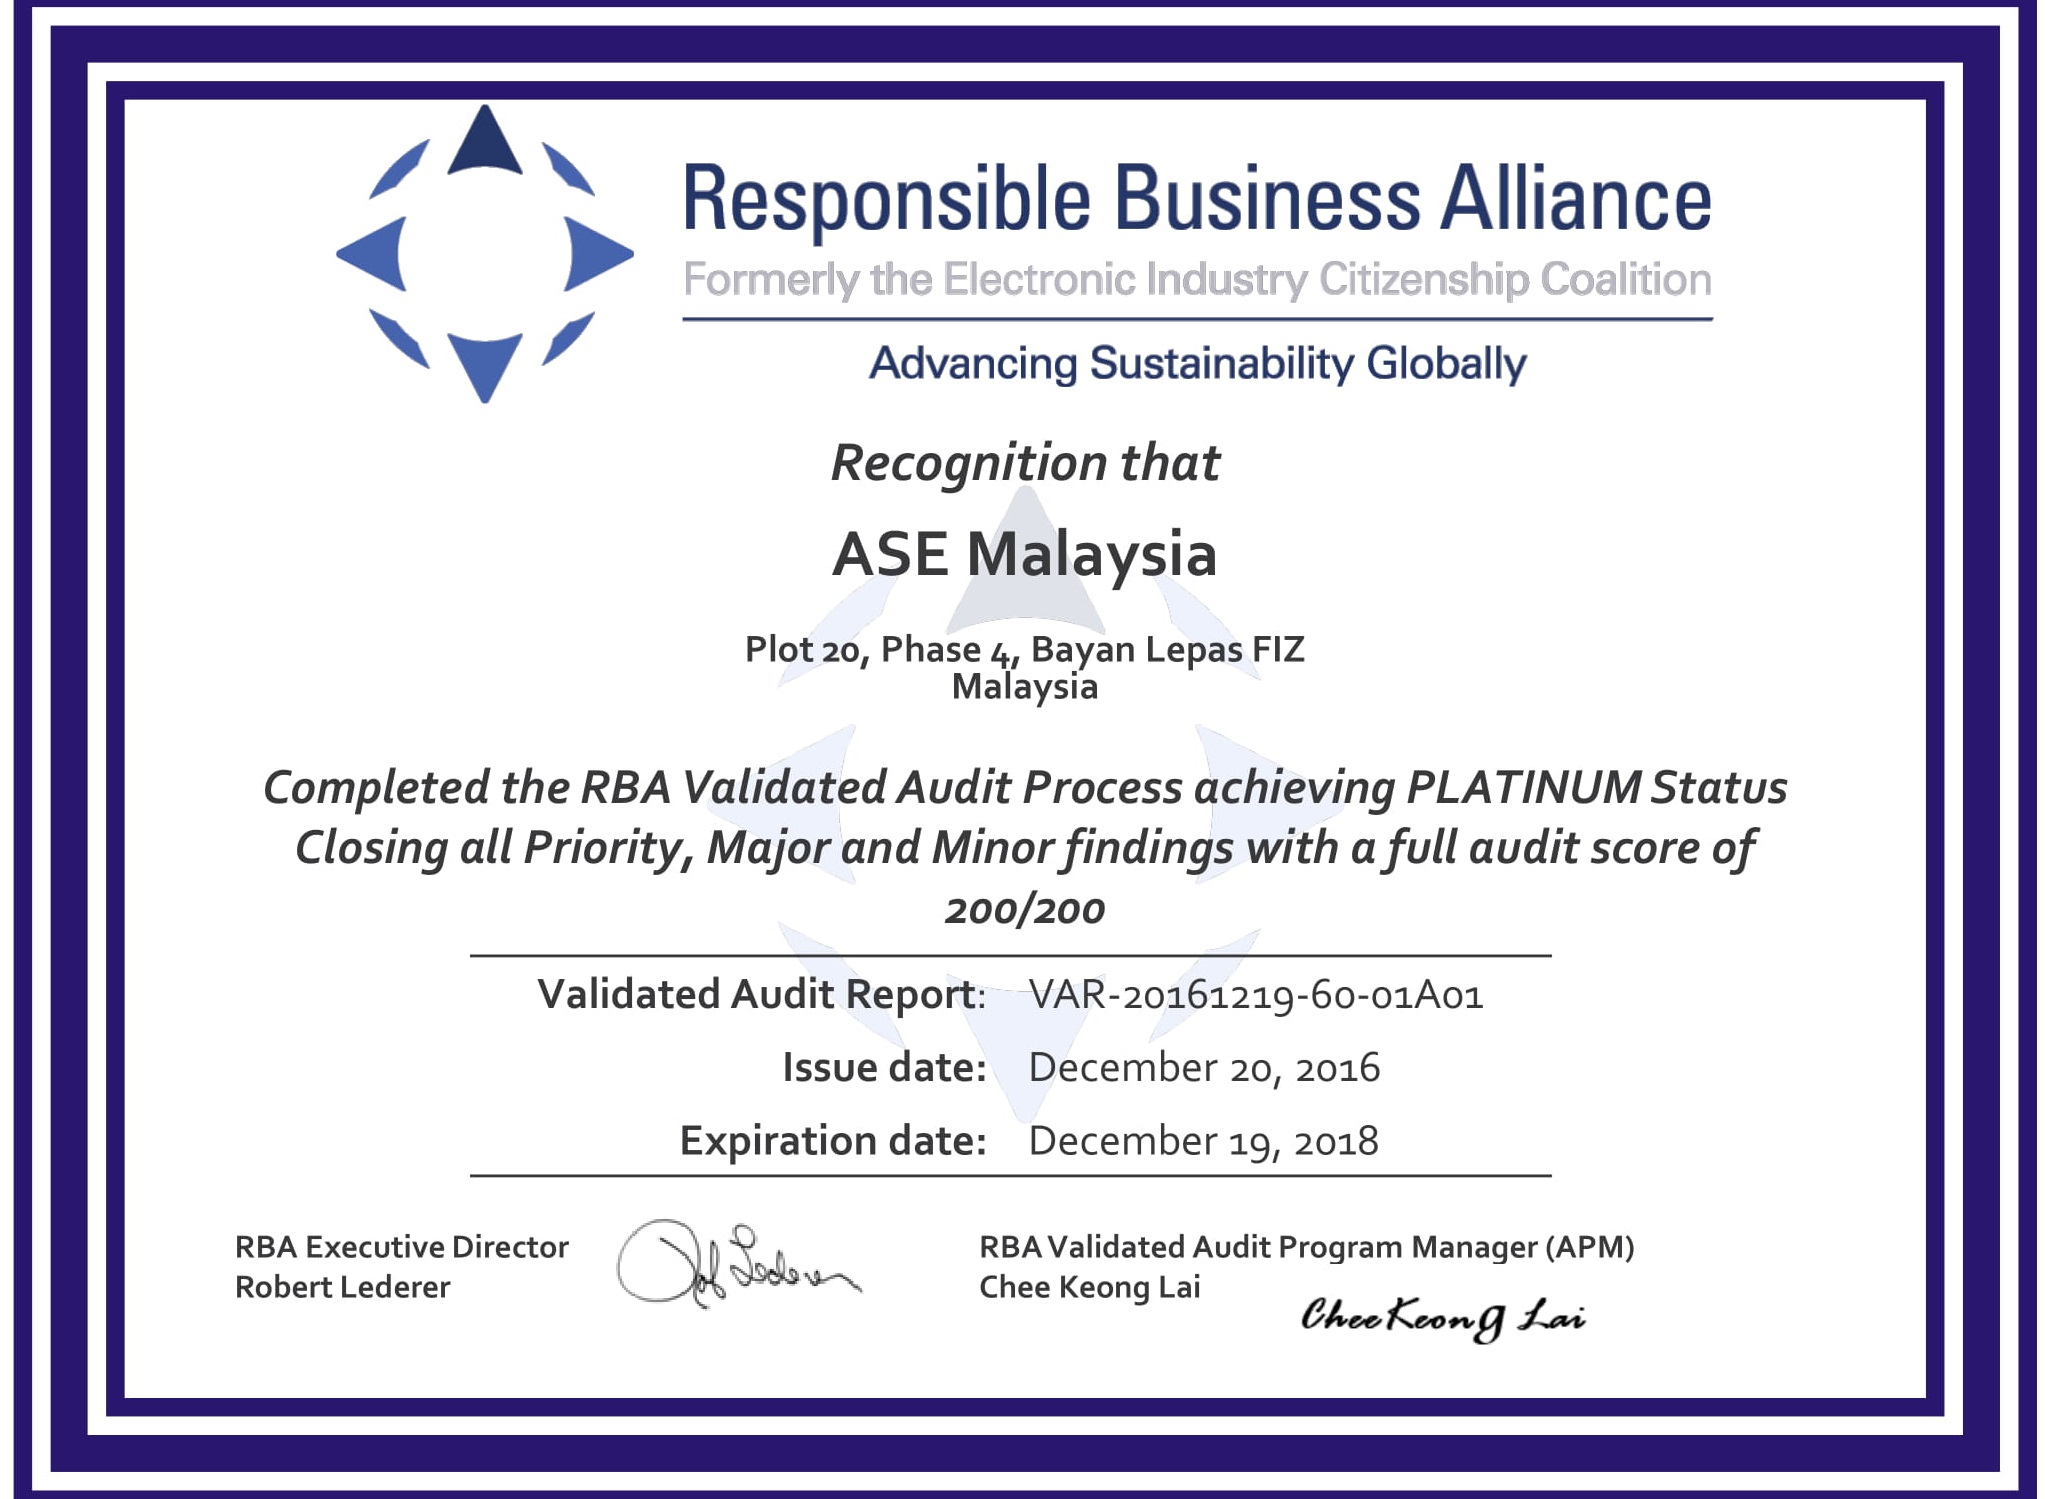 Responsible Business Alliance